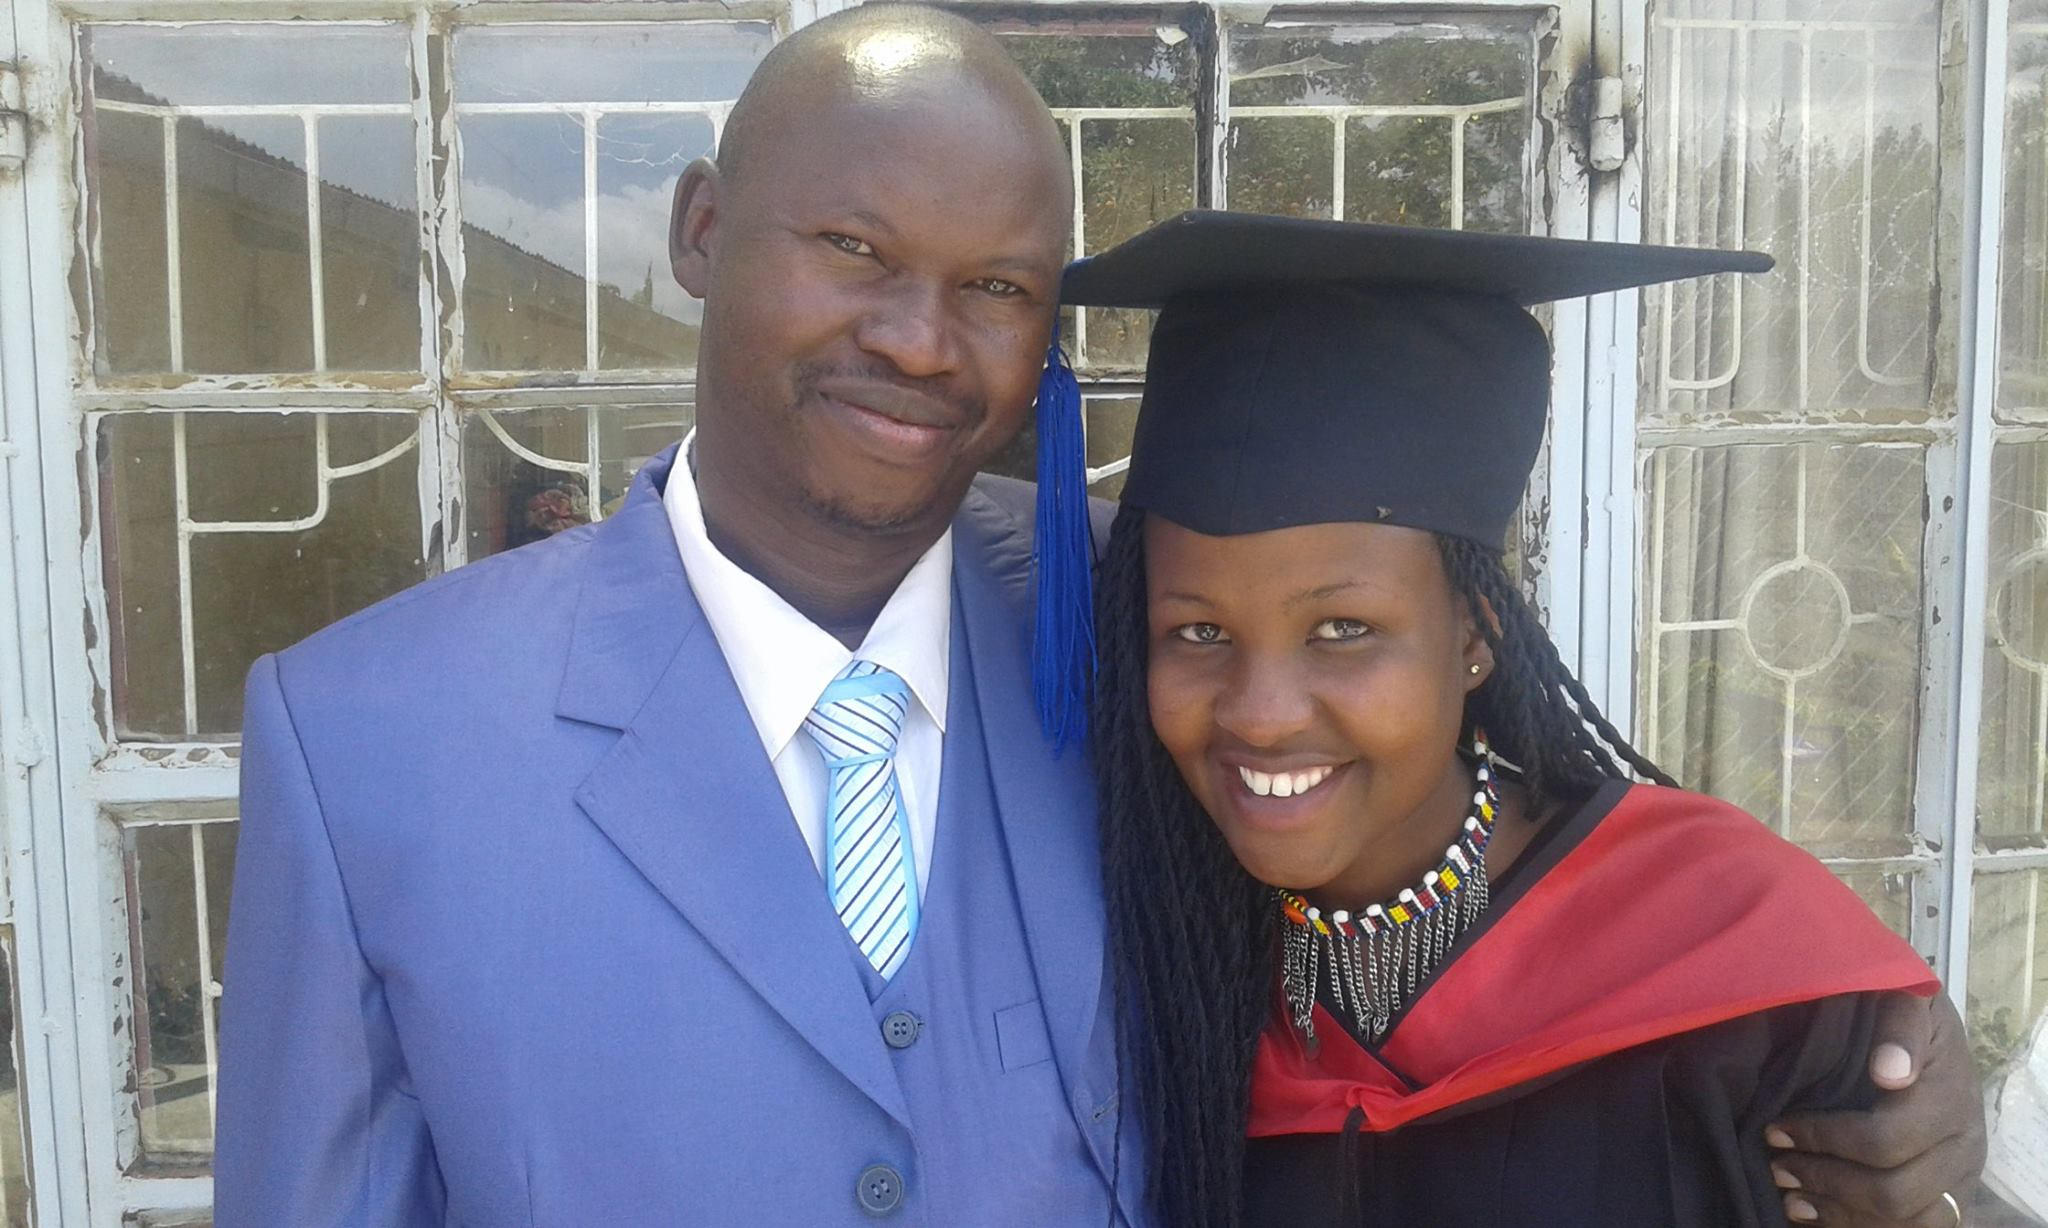 House of Hope Rescue Centre founder Patrick Ngigi (left) with a student who benefitted from the center's support system. Photo: Courtesy House of Hope Rescue Centre/Mission With a Vision